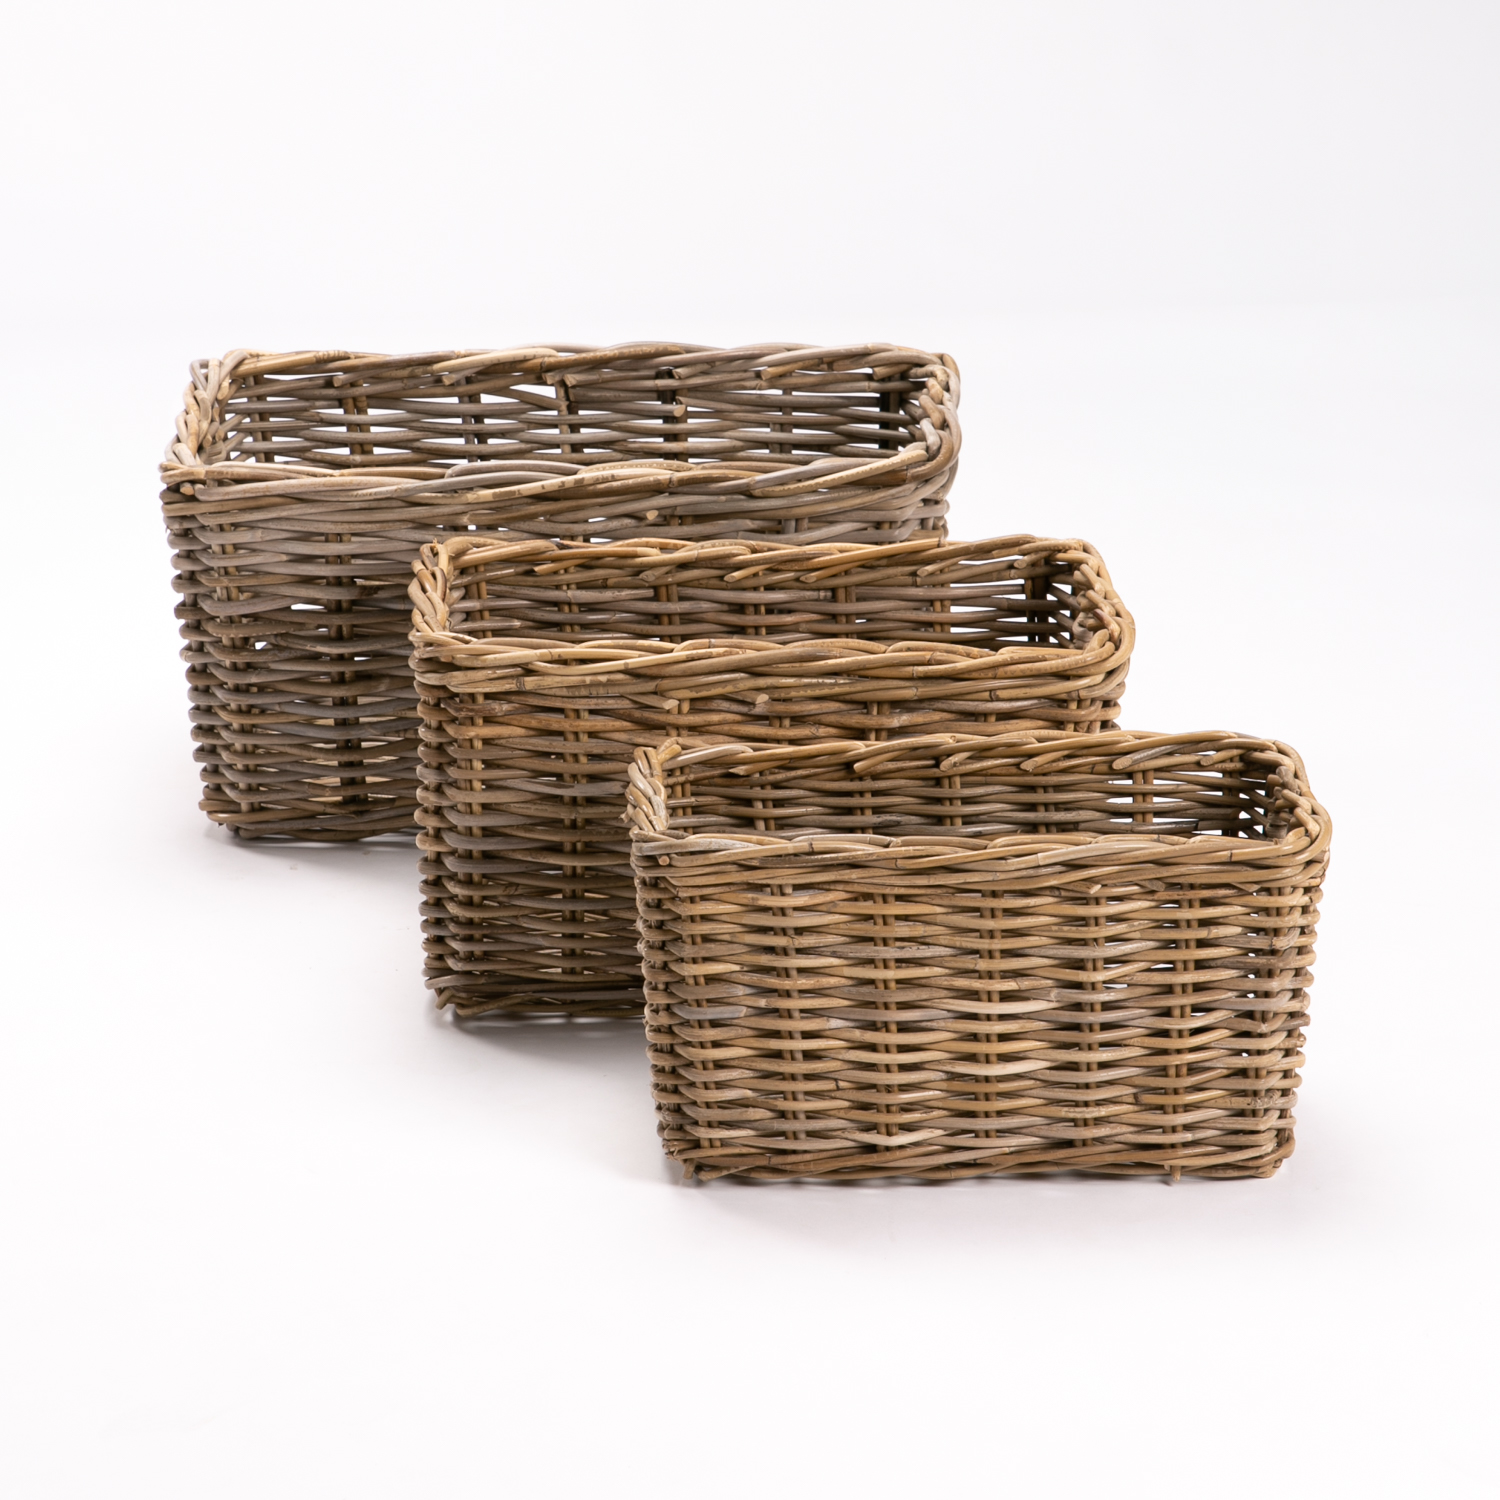 BASKETS SET OF 3